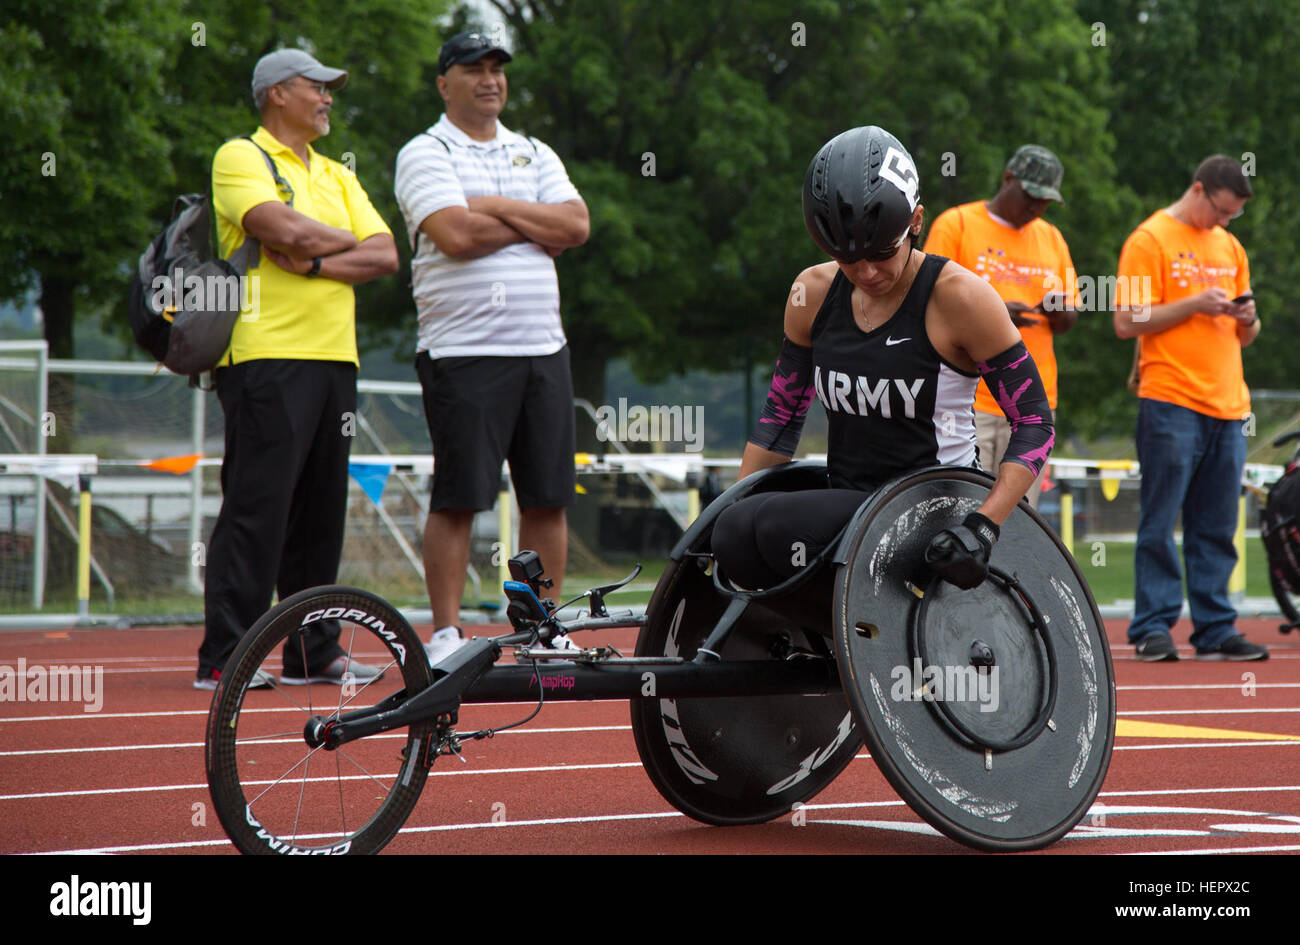 wheelchair cpt code how much does a chair cost u s army kelly elmlinger stock photos and